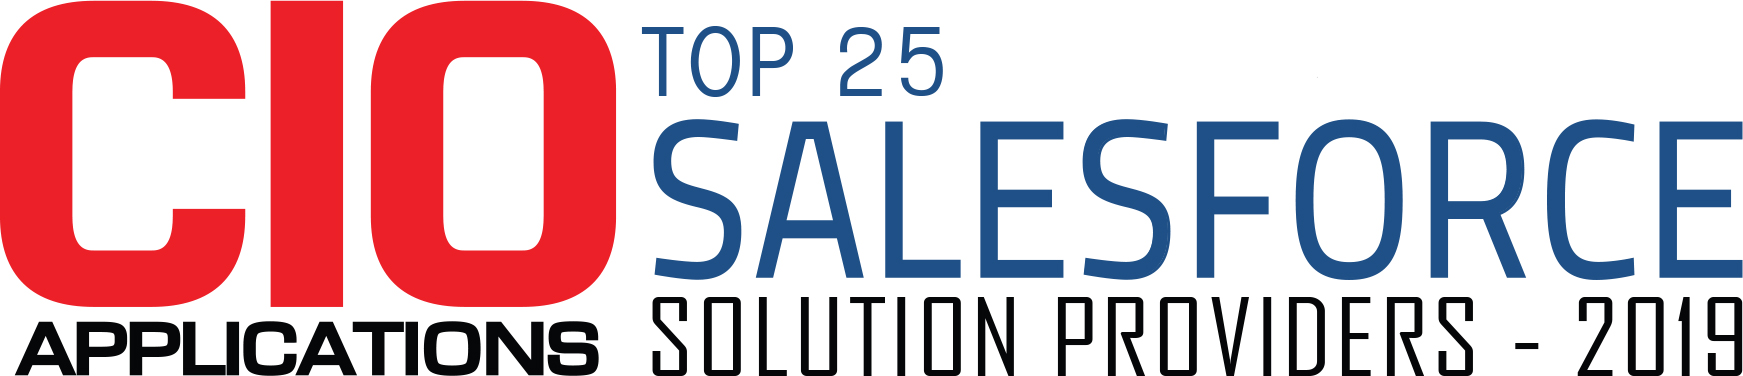 Top 25 Salesforce Solution Companies - 2019